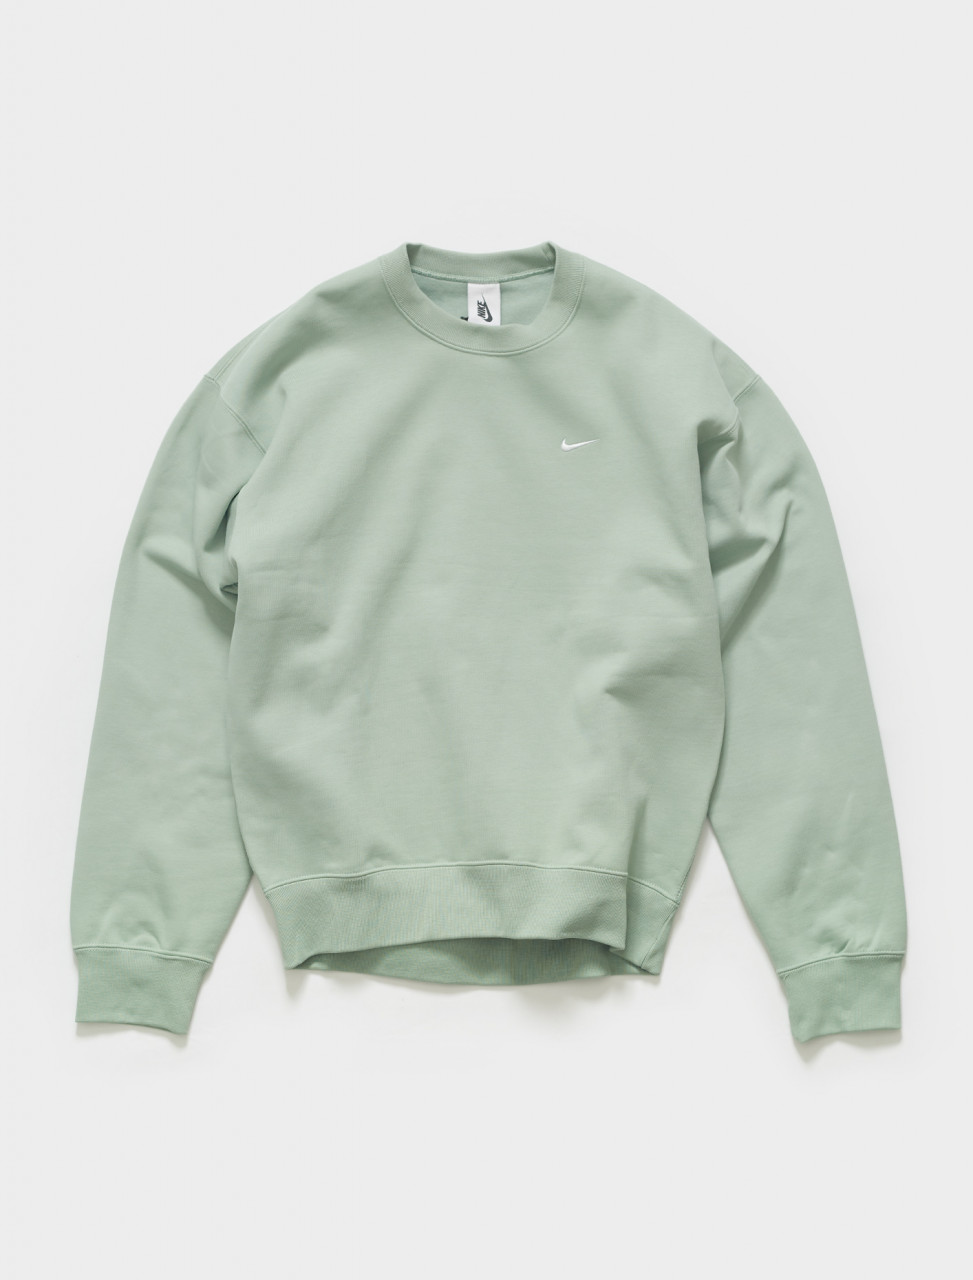 CV0554-006 NIKE NRG SOLO SWOOSH CREWNECK FLEECE IN STEAM WHITE